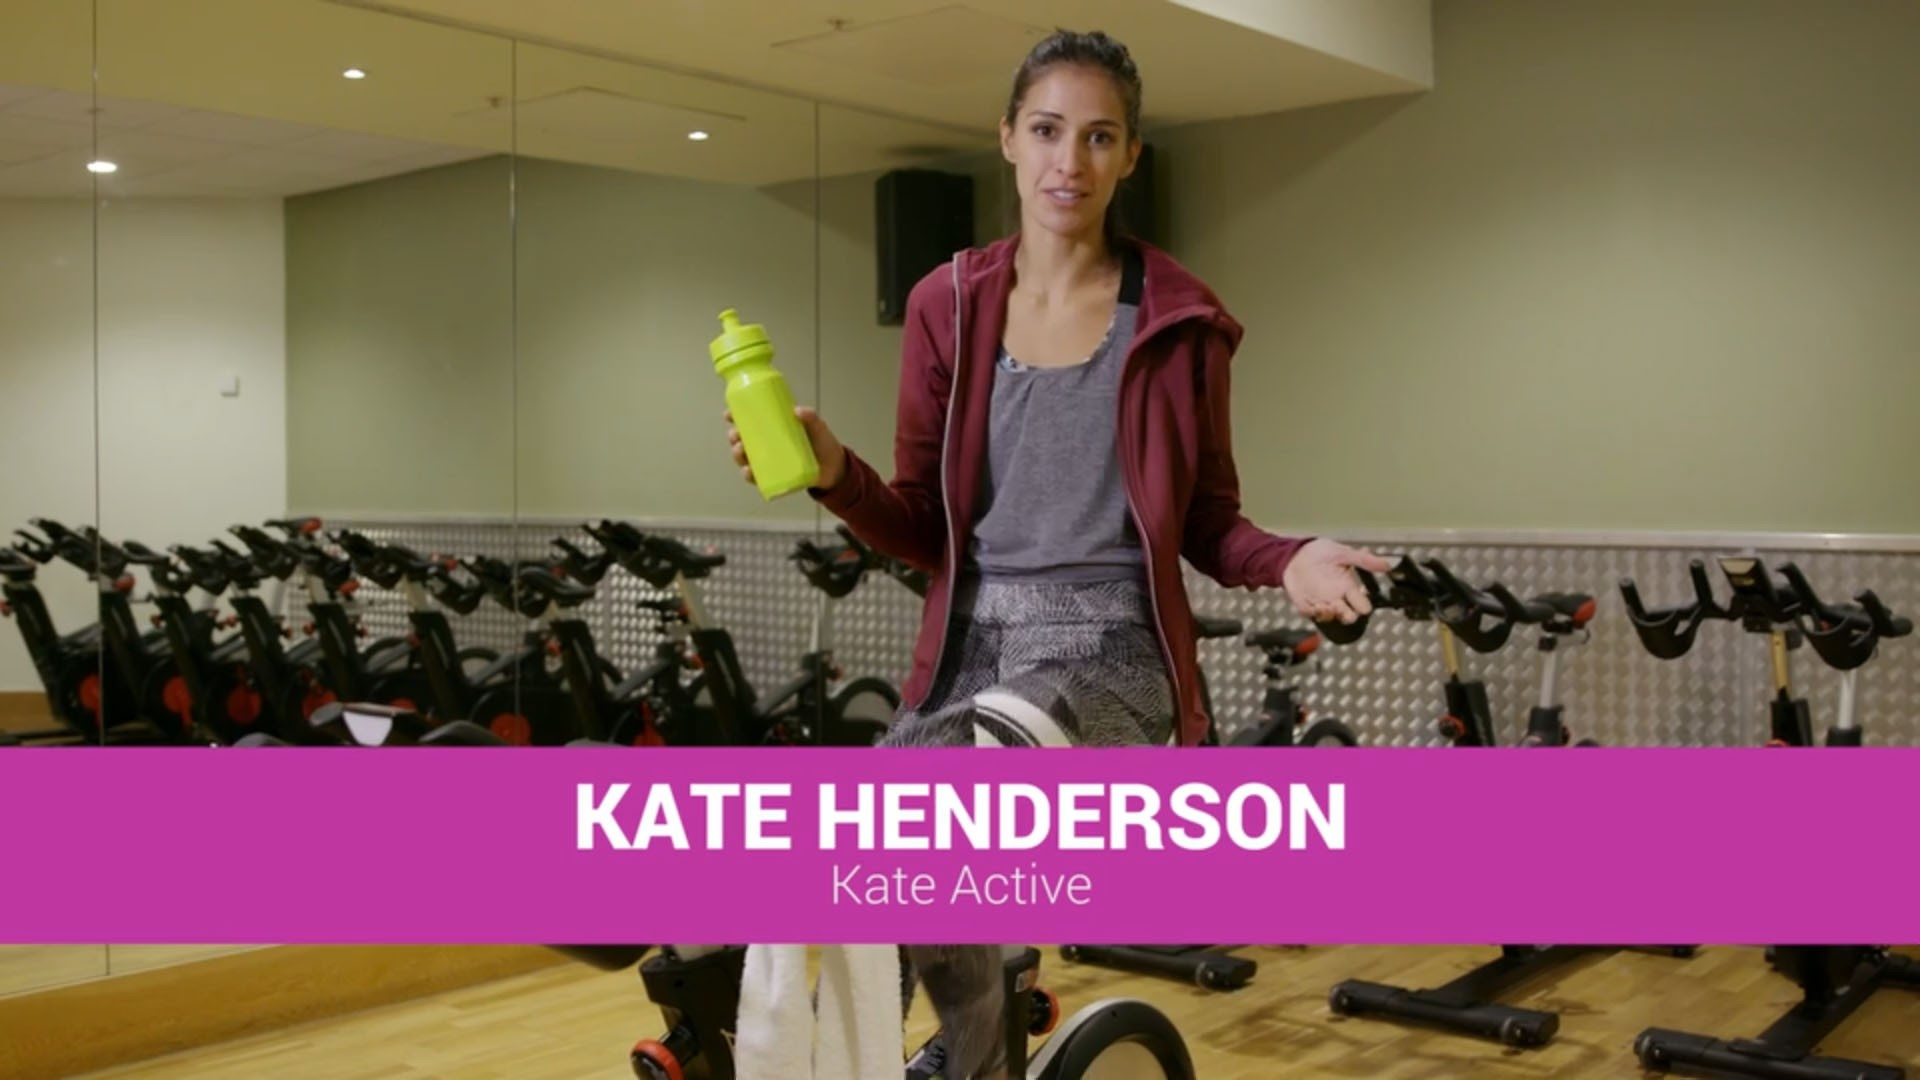 Meet Kate owner of KateActive